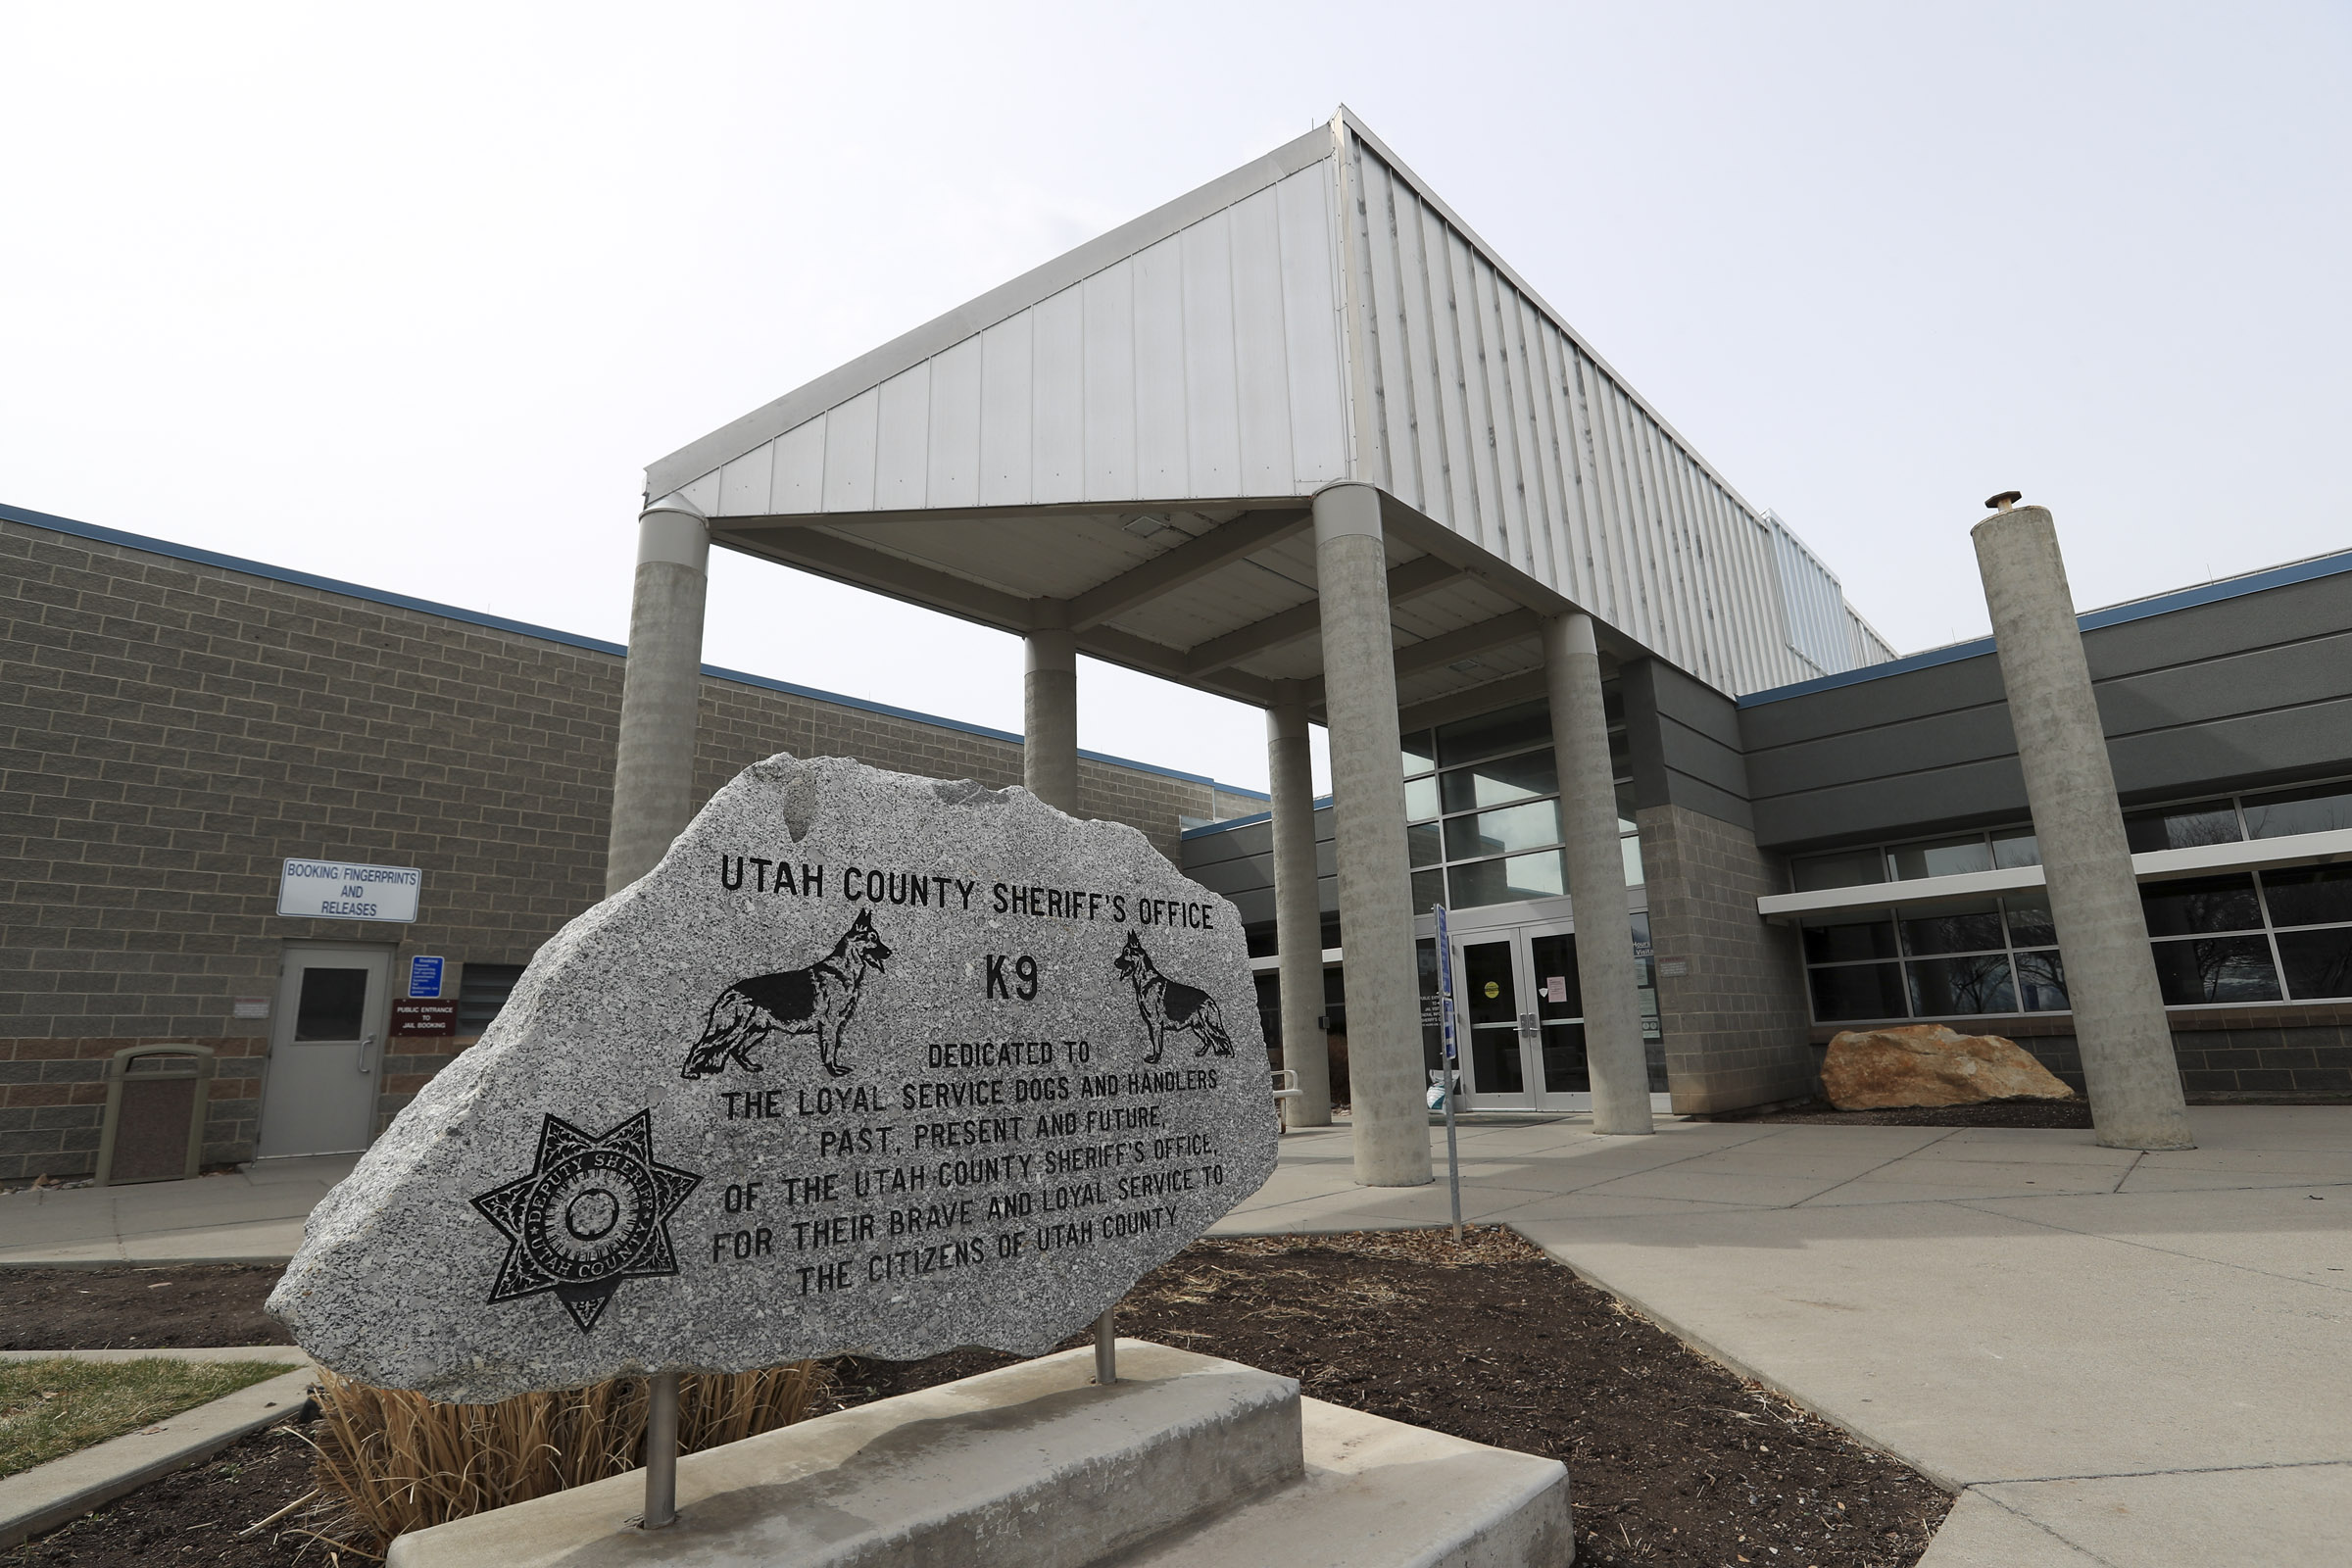 The Utah County Jail in Spanish Fork is pictured on Monday, March 22, 2021.